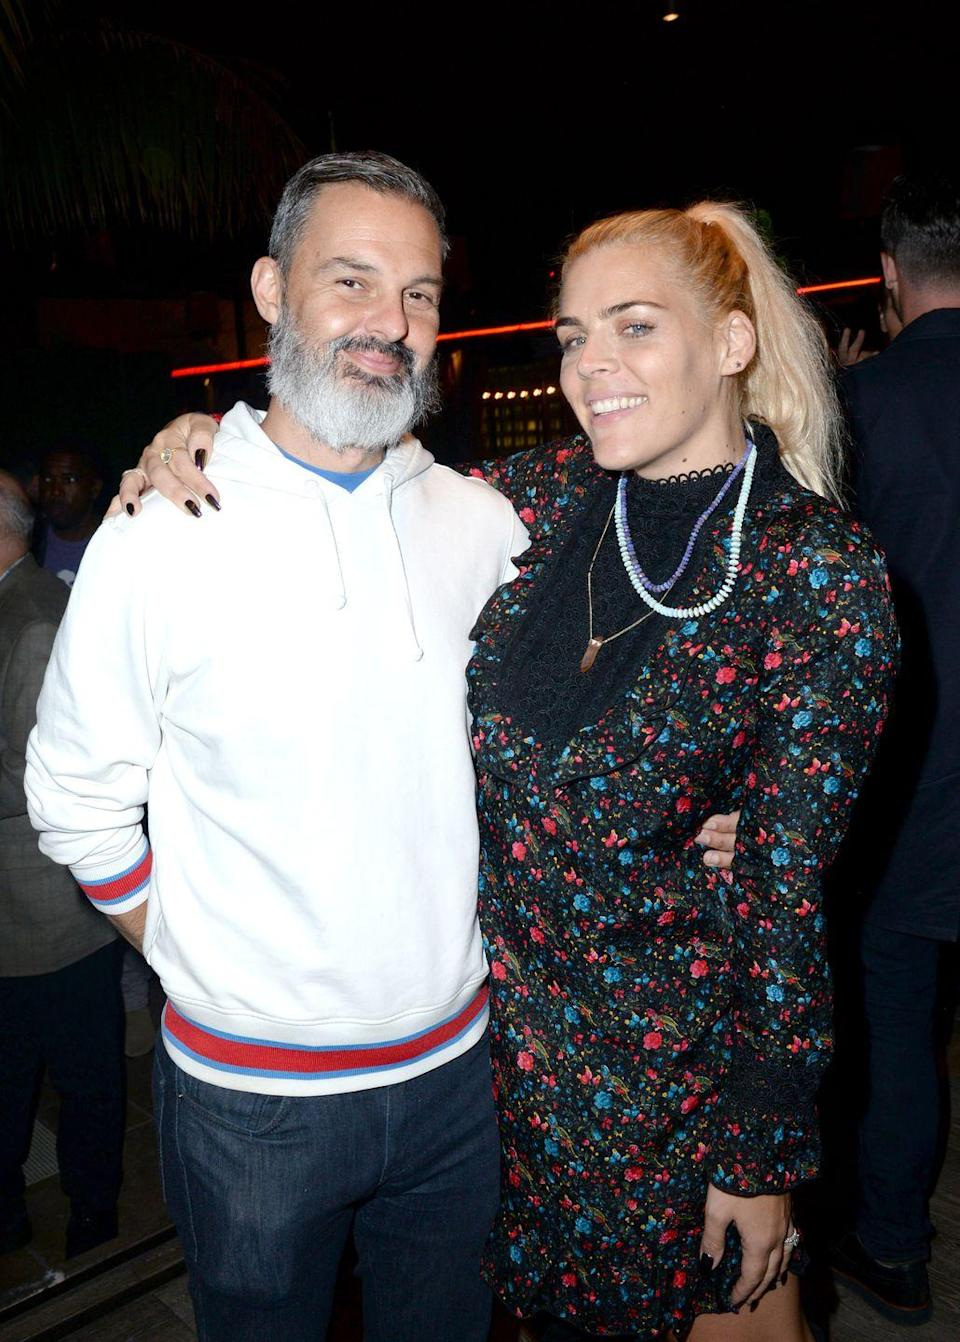 "<p>Busy Philipps announced via <a href=""https://twitter.com/BusyPhilipps/status/352557640204836864?ref_src=twsrc%5Etfw%7Ctwcamp%5Etweetembed%7Ctwterm%5E352557640204836864&ref_url=https%3A%2F%2Fwww.etonline.com%2Fnews%2F135807_Busy_Philipps_Gives_Birth"" rel=""nofollow noopener"" target=""_blank"" data-ylk=""slk:Twitter"" class=""link rapid-noclick-resp"">Twitter</a> the arrival of Cricket Pearl in 2013, her second daughter with husband Marc Silverstein—the couple is also parents to Birdie Leigh.</p><p>Busy explained to the <em><a href=""https://www.today.com/parents/busy-philipps-explains-her-daughters-names-cricket-birdie-2D79346503"" rel=""nofollow noopener"" target=""_blank"" data-ylk=""slk:TODAY Show"" class=""link rapid-noclick-resp"">TODAY Show</a></em> the reason they chose their daughters' unique names: ""Since I grew up with a nickname—Busy being short for Elizabeth—when my husband and I started to have our babies, we decided that if wanted to call our kids something, we would just name them that thing that we wanted to call them,"" she <a href=""https://www.today.com/parents/busy-philipps-explains-her-daughters-names-cricket-birdie-2D79346503"" rel=""nofollow noopener"" target=""_blank"" data-ylk=""slk:said"" class=""link rapid-noclick-resp"">said</a>.</p>"